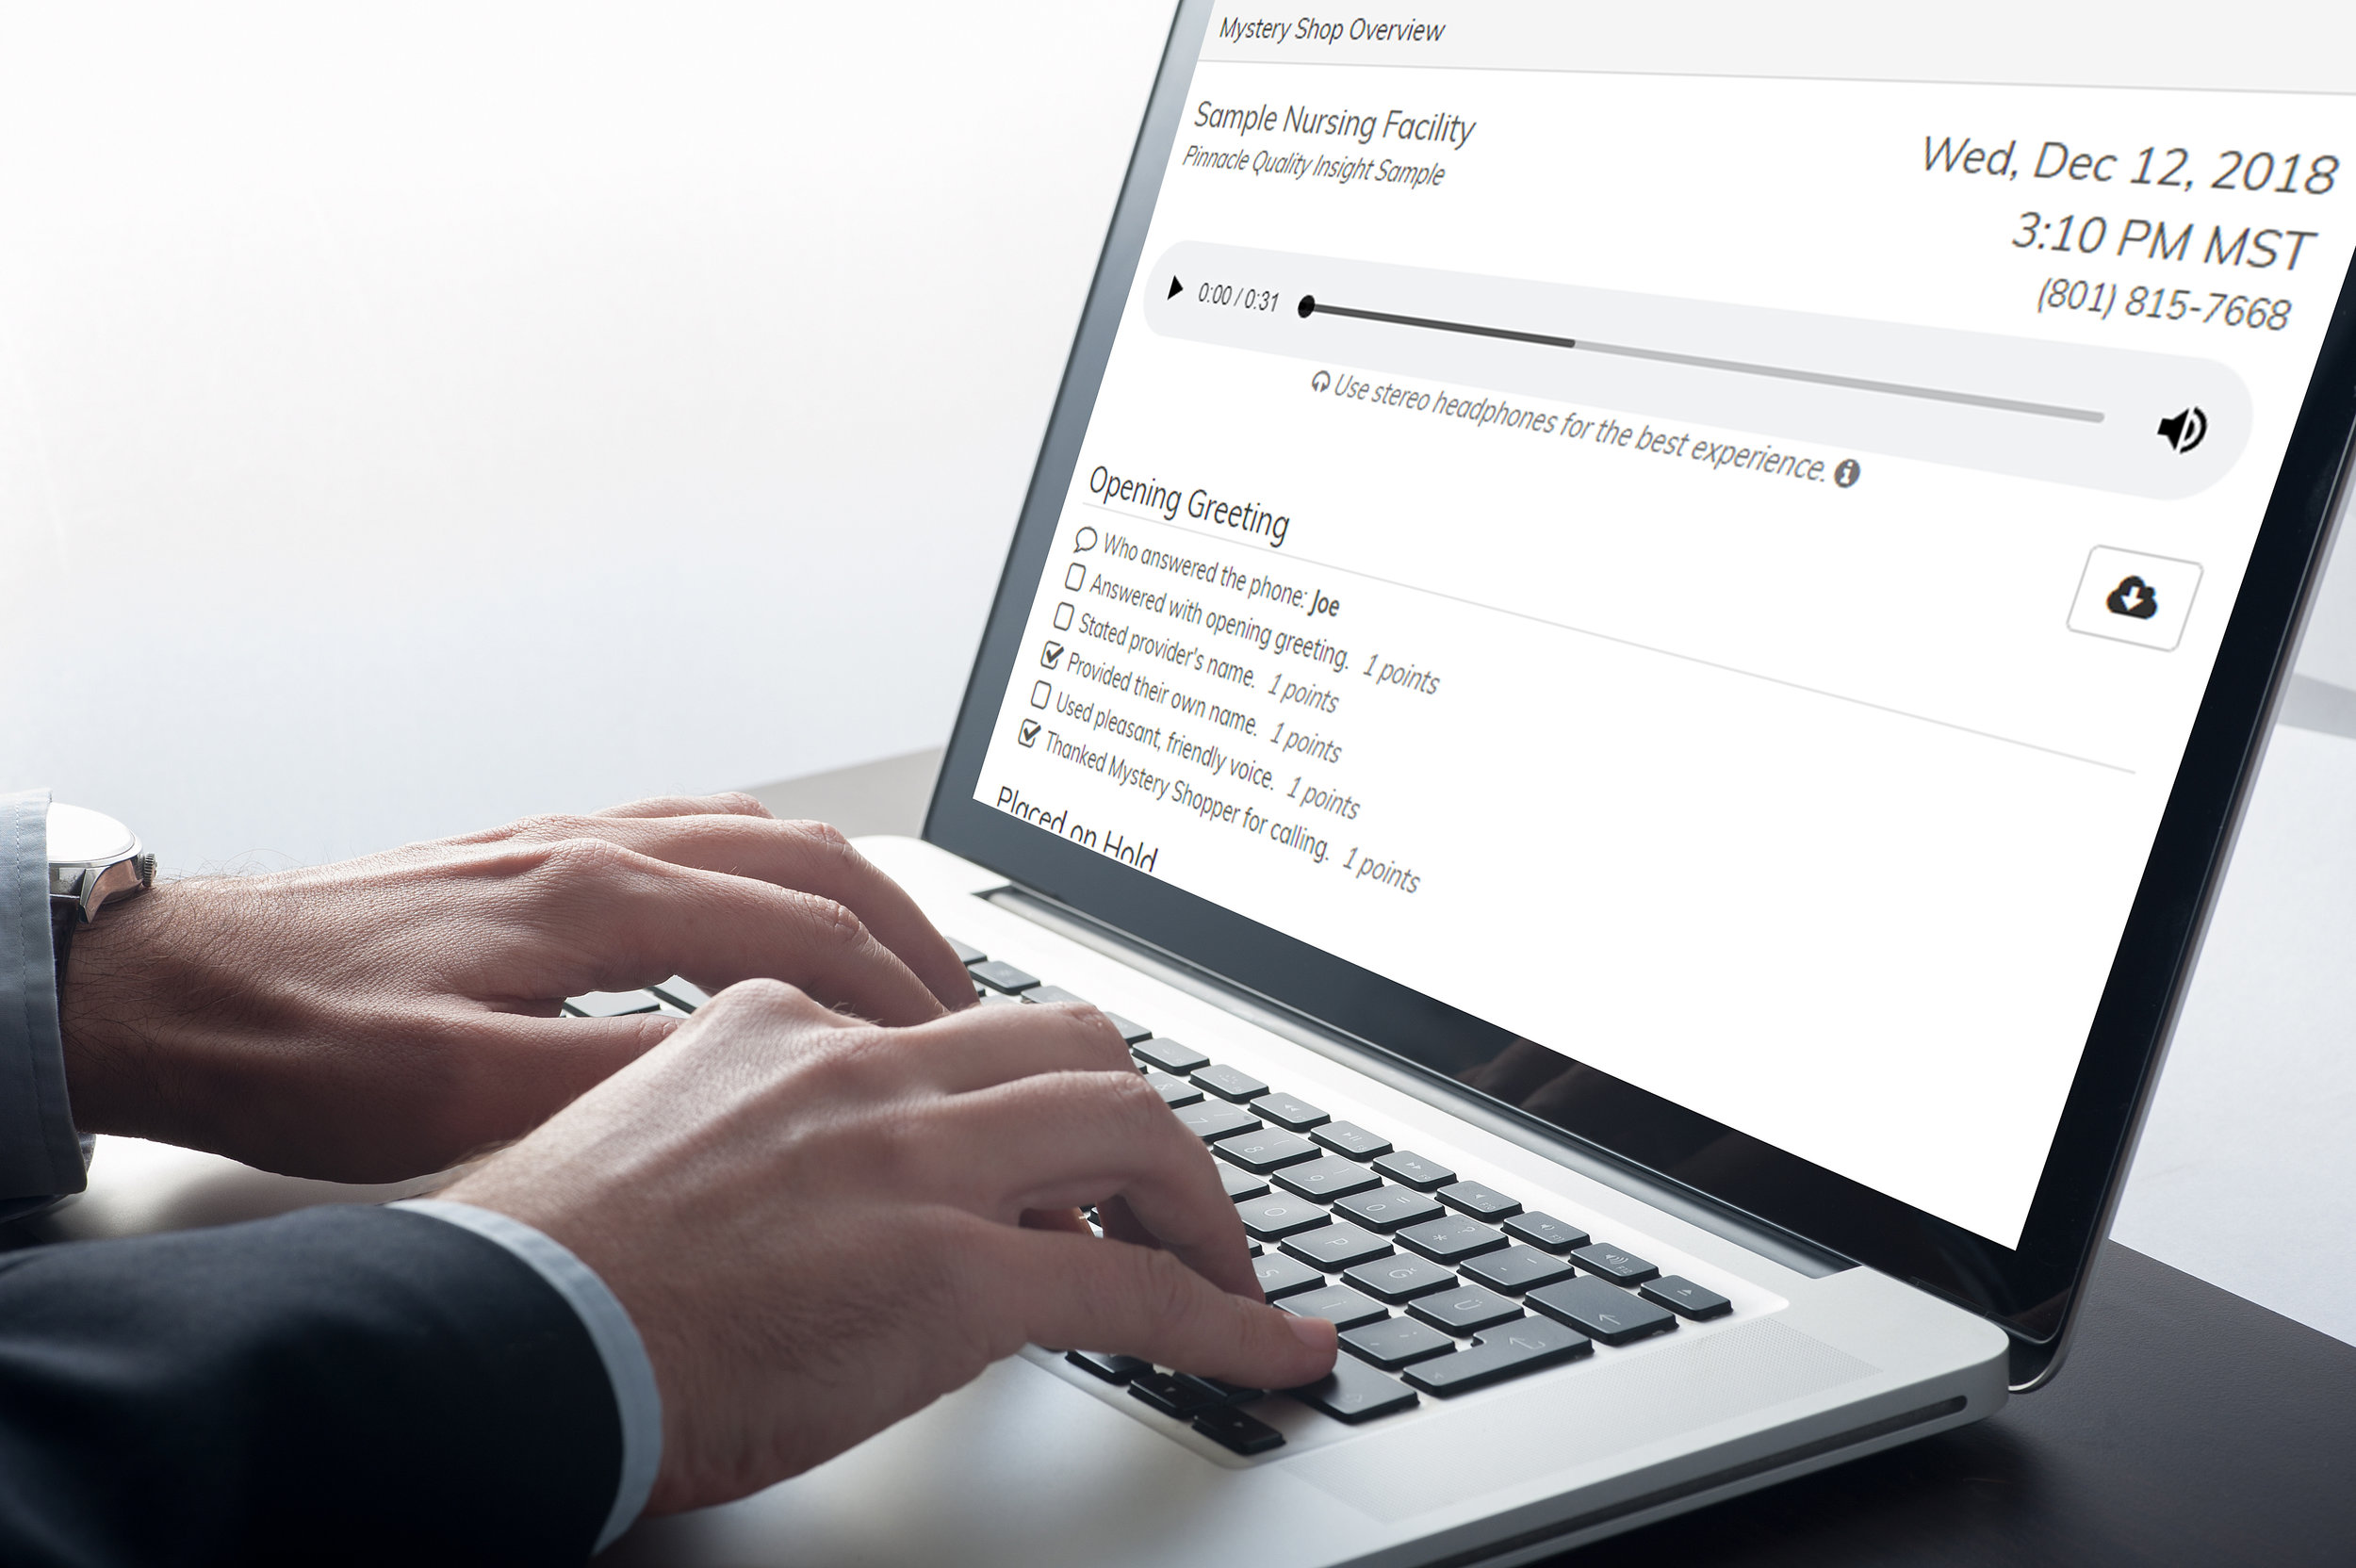 Scorecard on Laptop.jpg